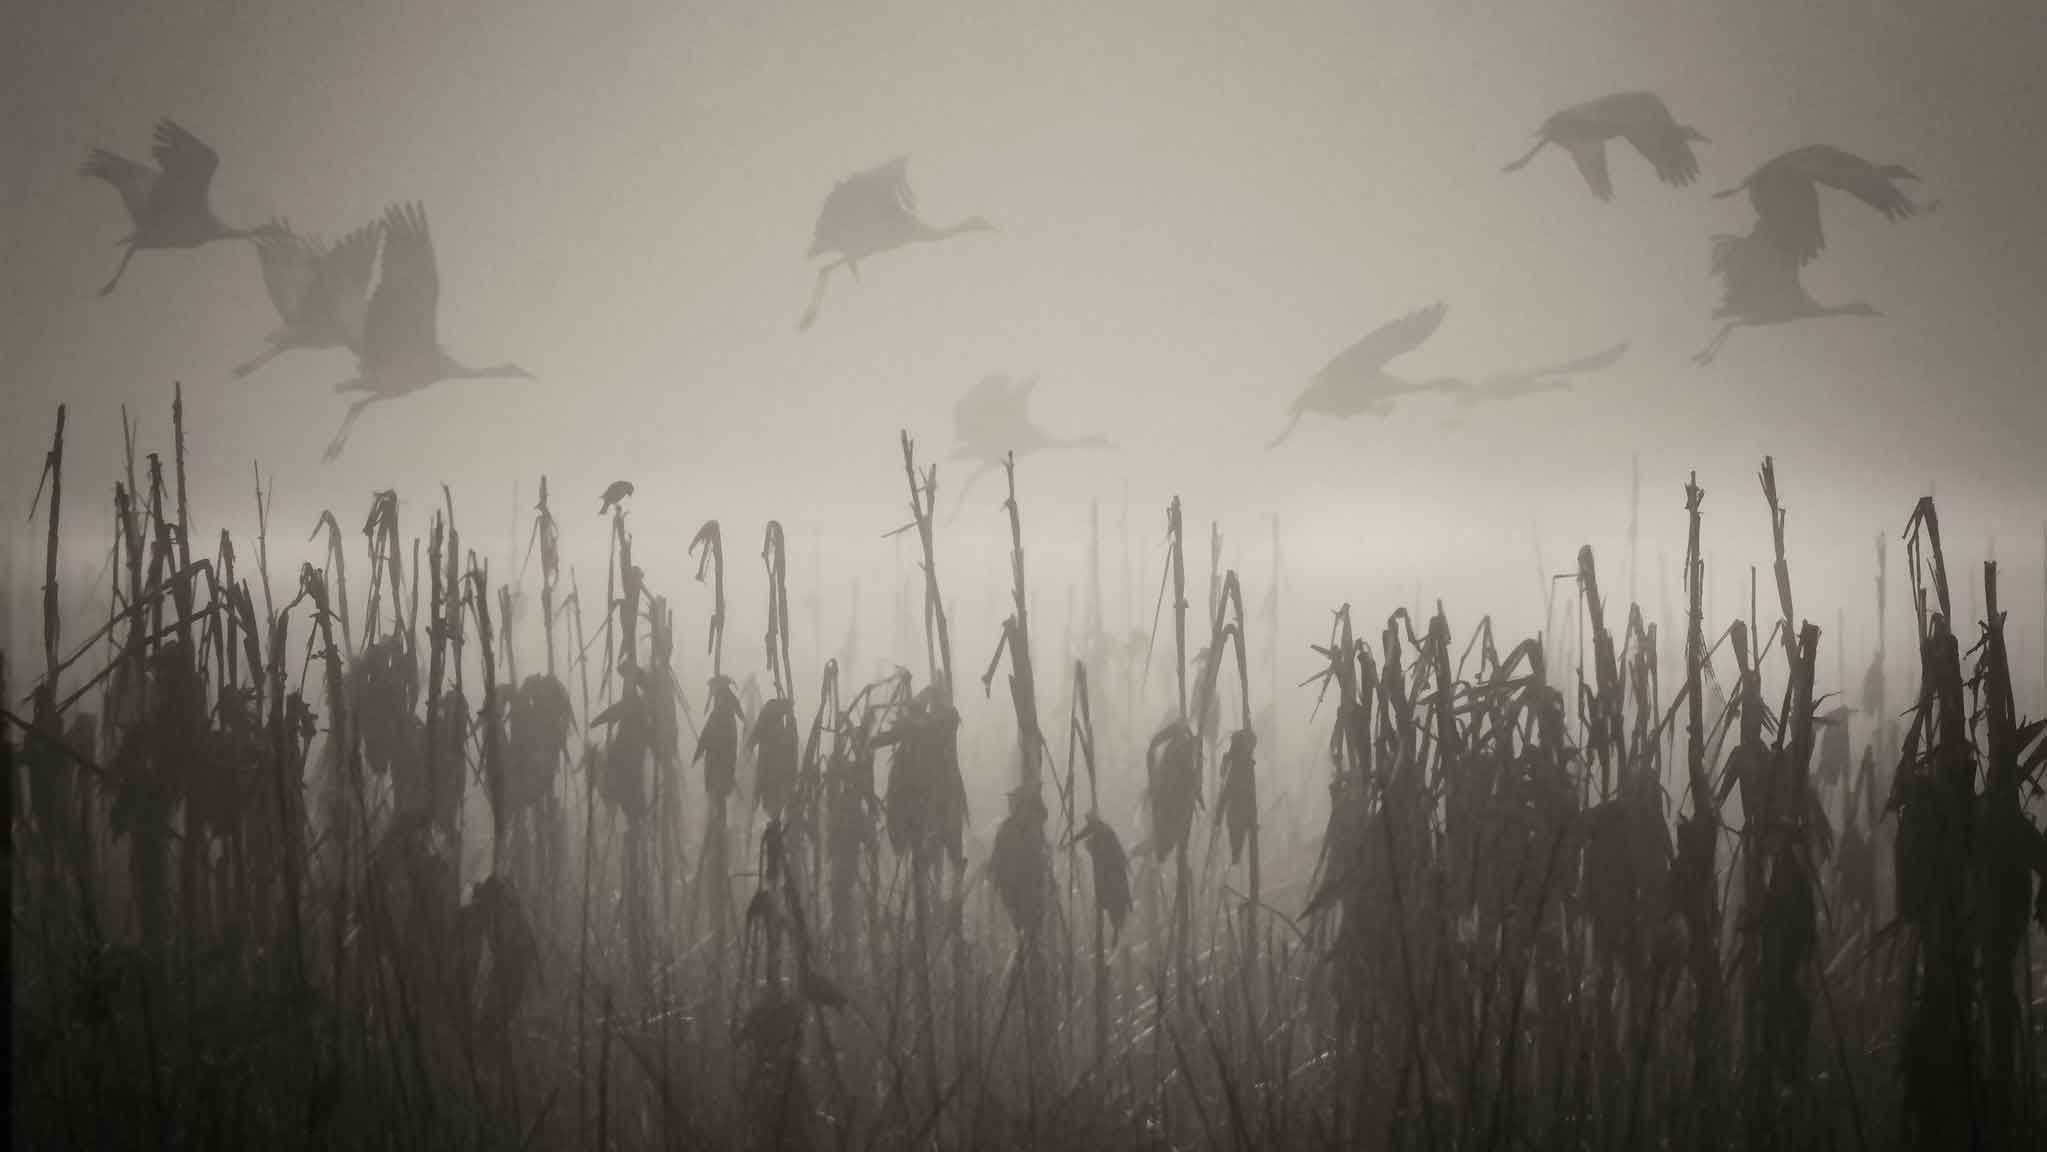 cranes fly through a field covered in fog